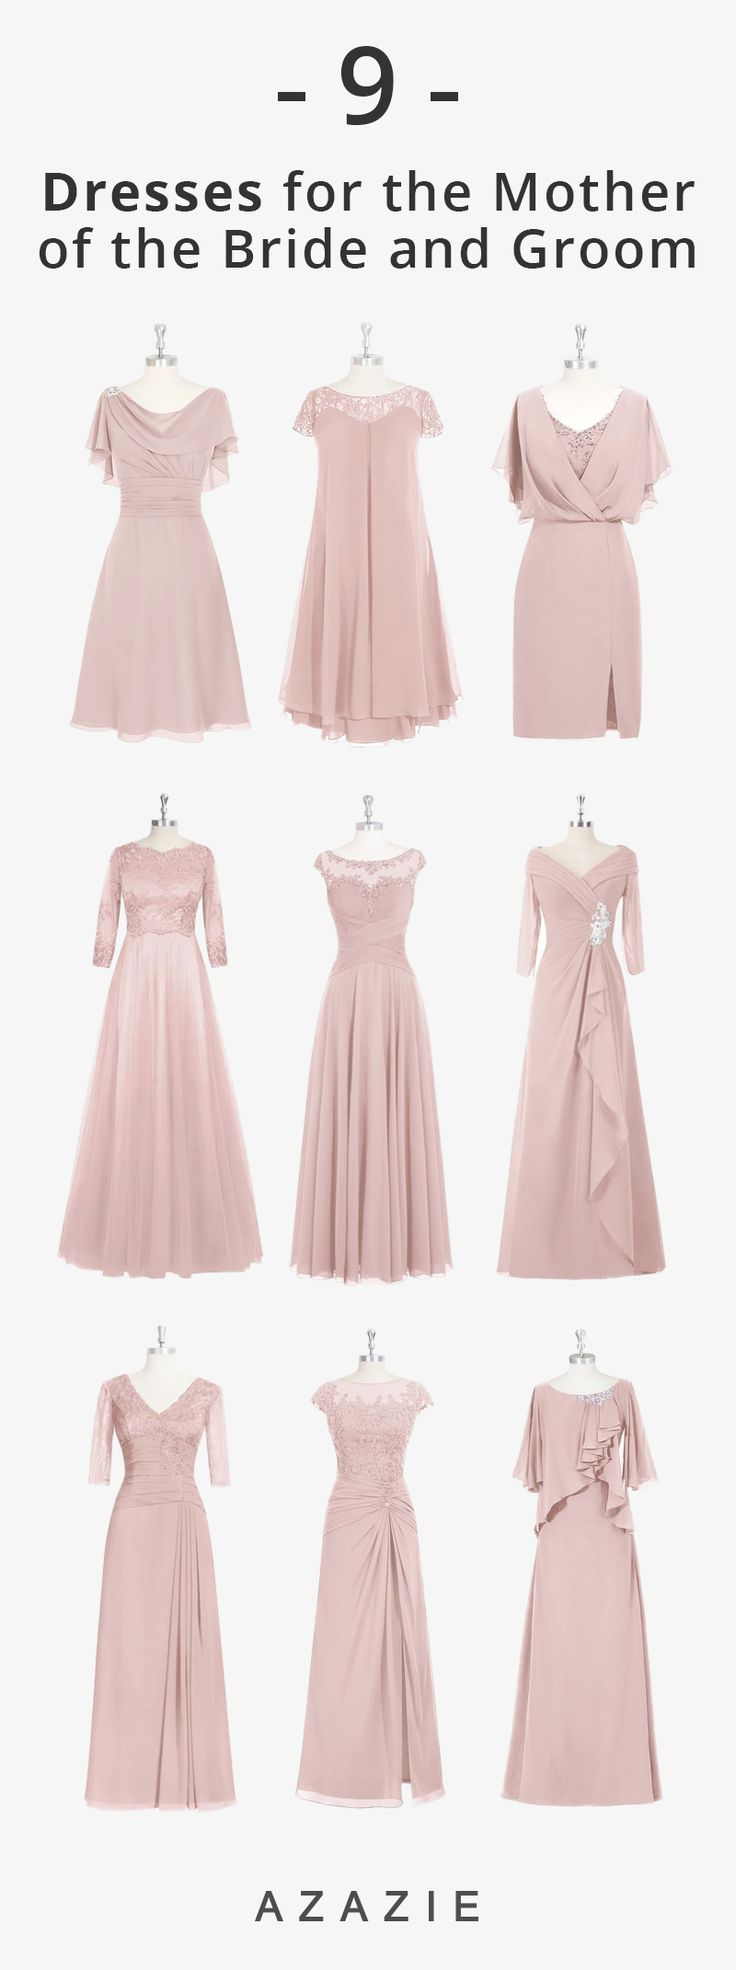 Azazie is the online destination for special occasion dresses. Our online boutique connects bridesmaids and brides with over 400 on-trend styles, where each is available in 50+ colors. Photo by Alicia Ann Photographers